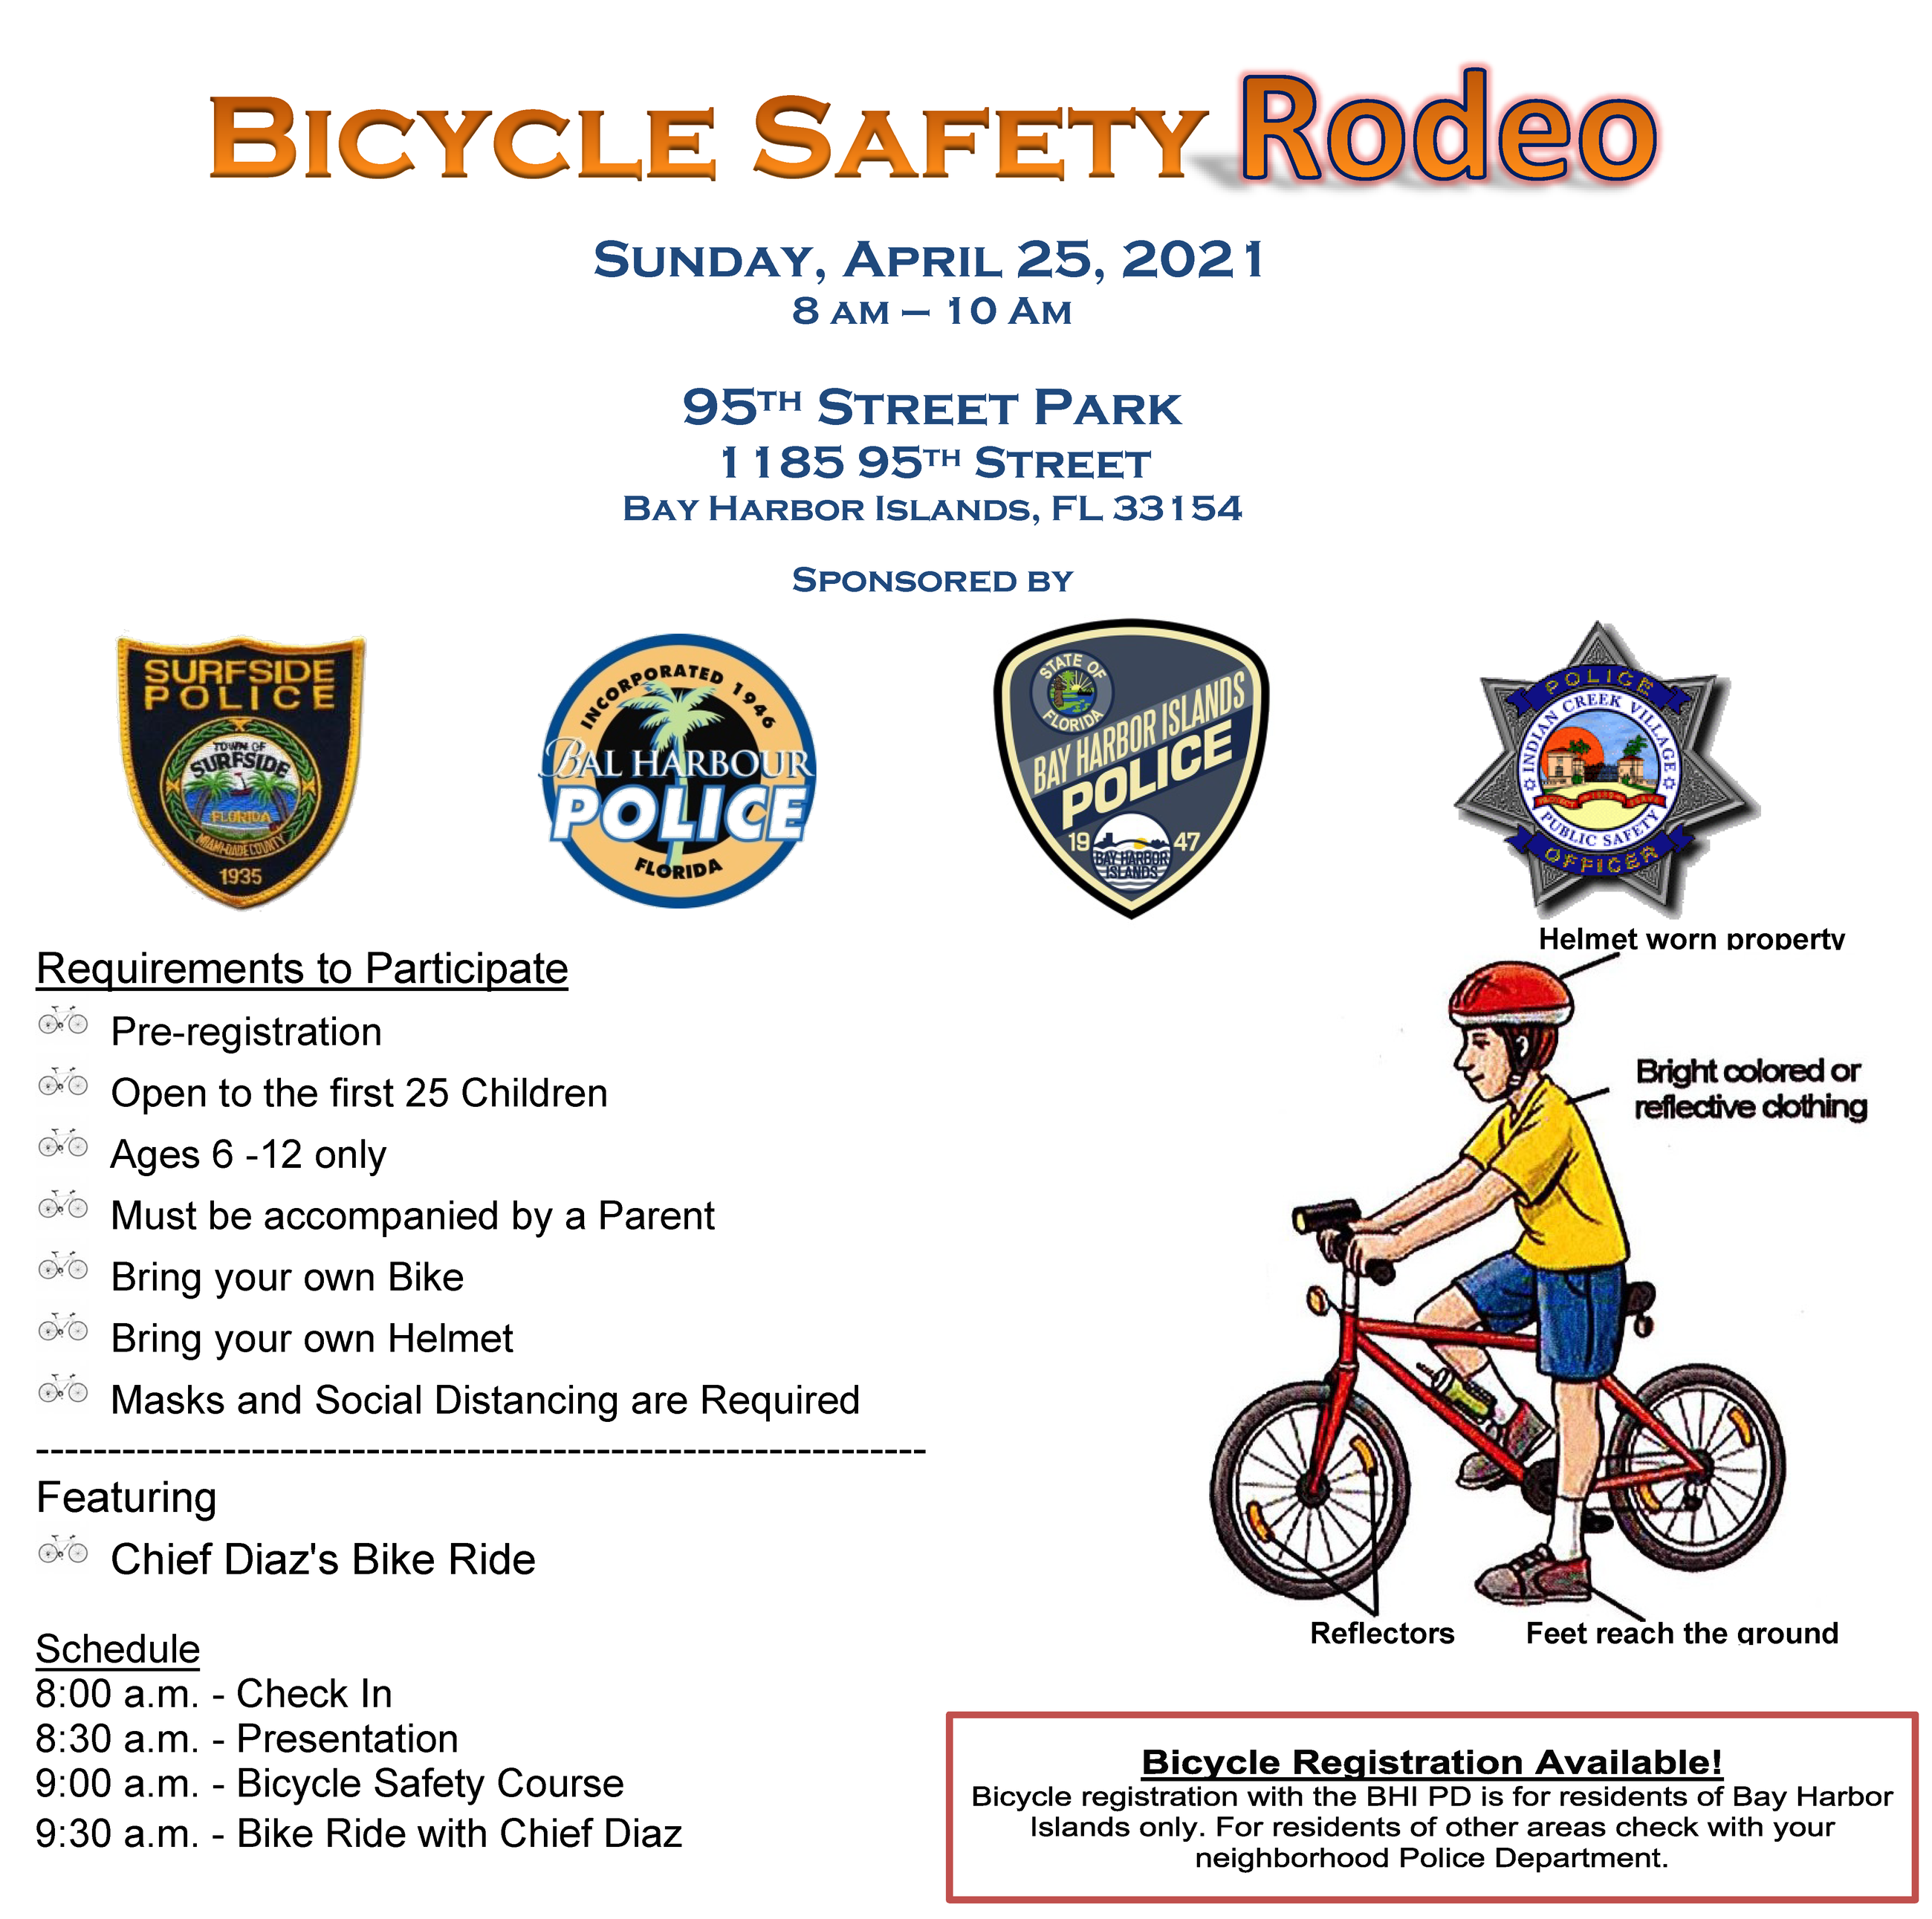 BIKE RODEO FLYER-2021-2